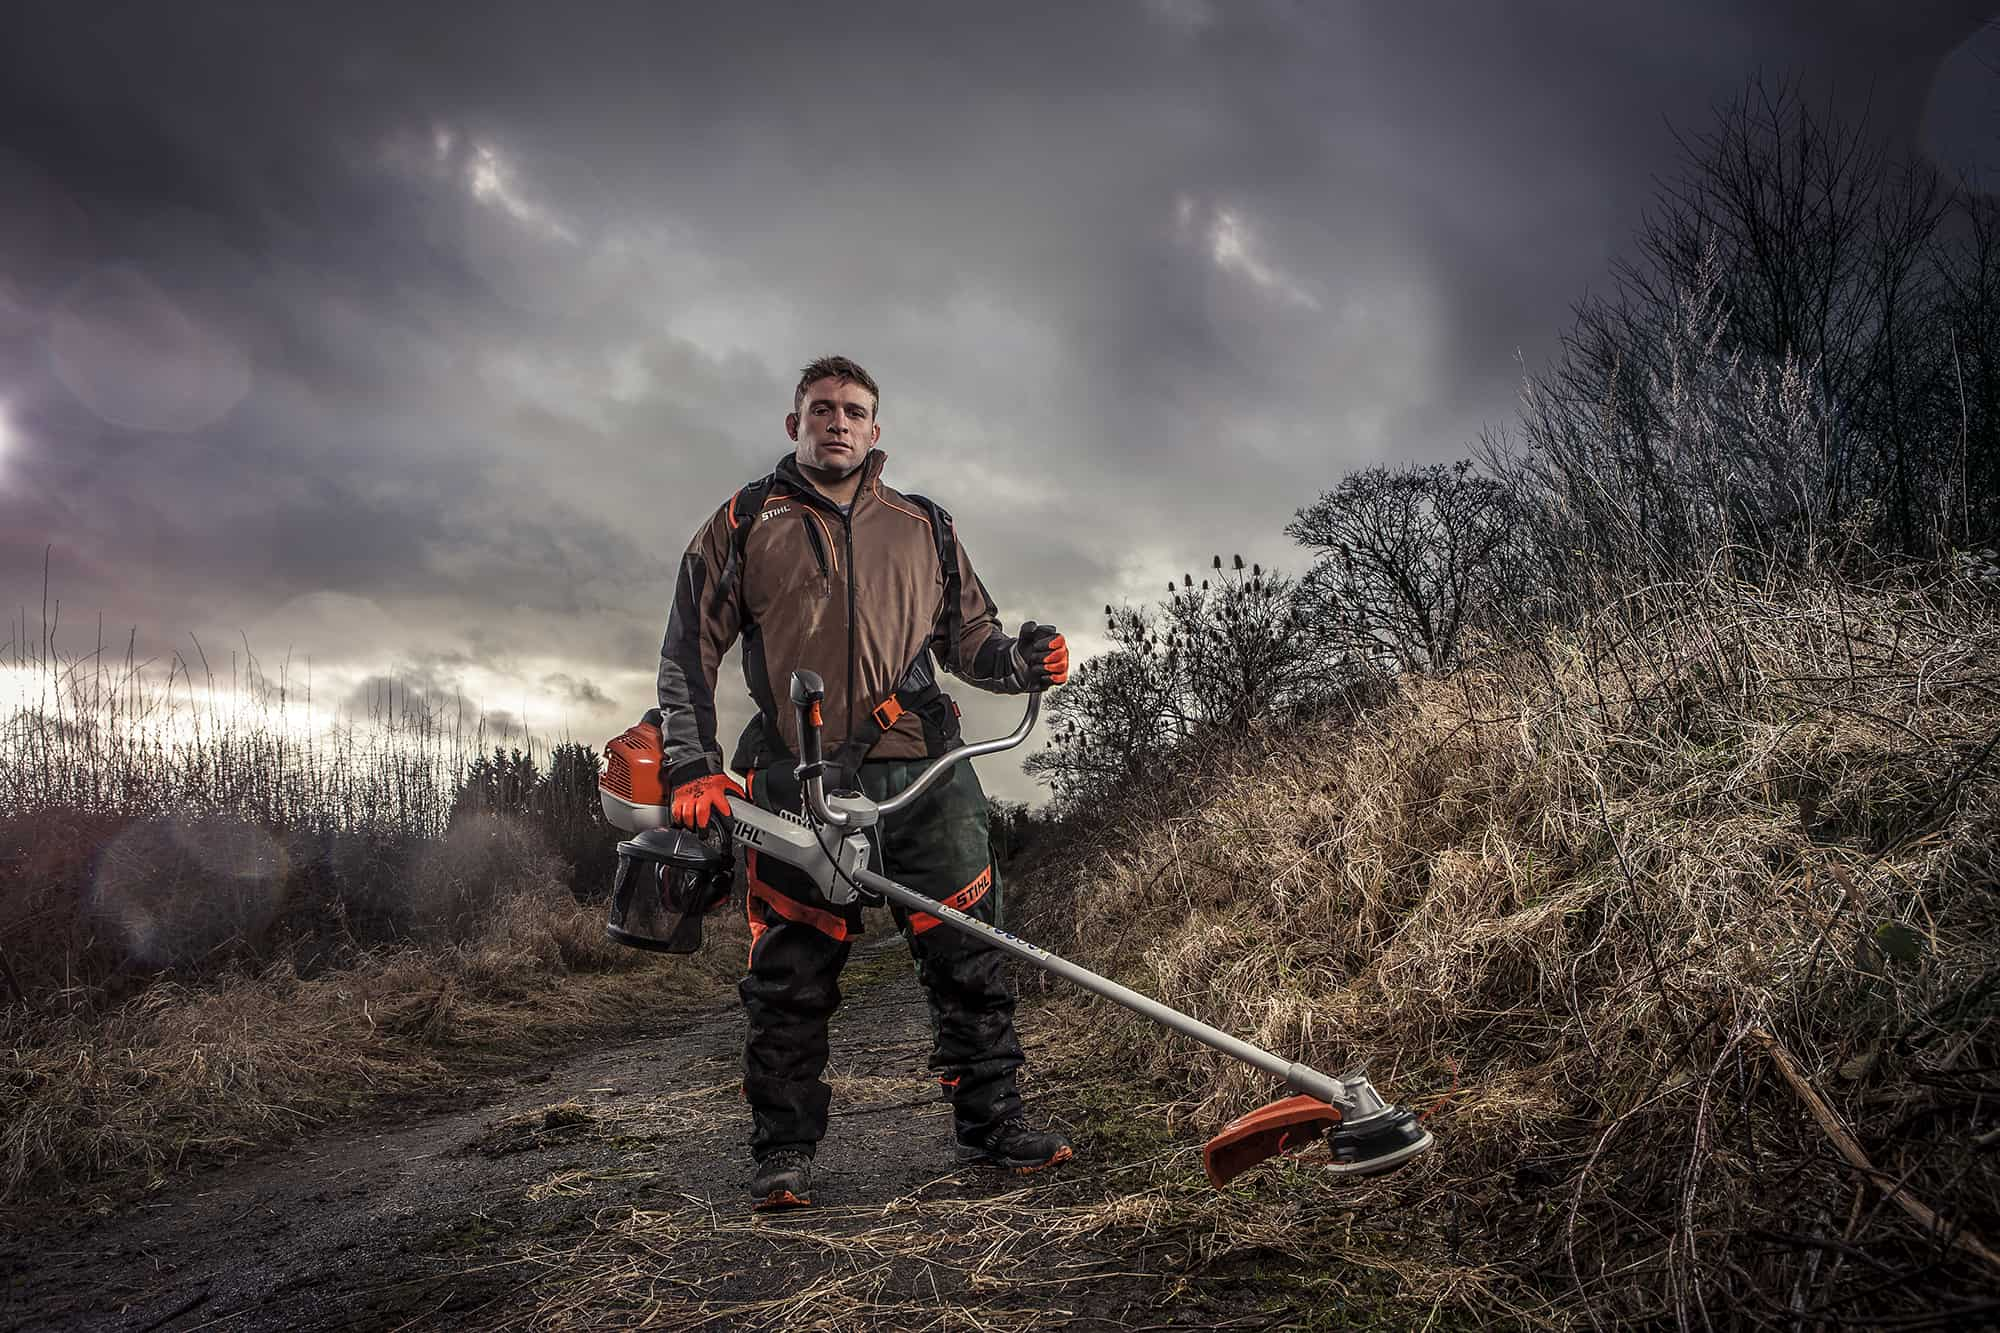 image of Tom youngs leicester Hooker using Stihl bush cutter tool location photography by ross vincent